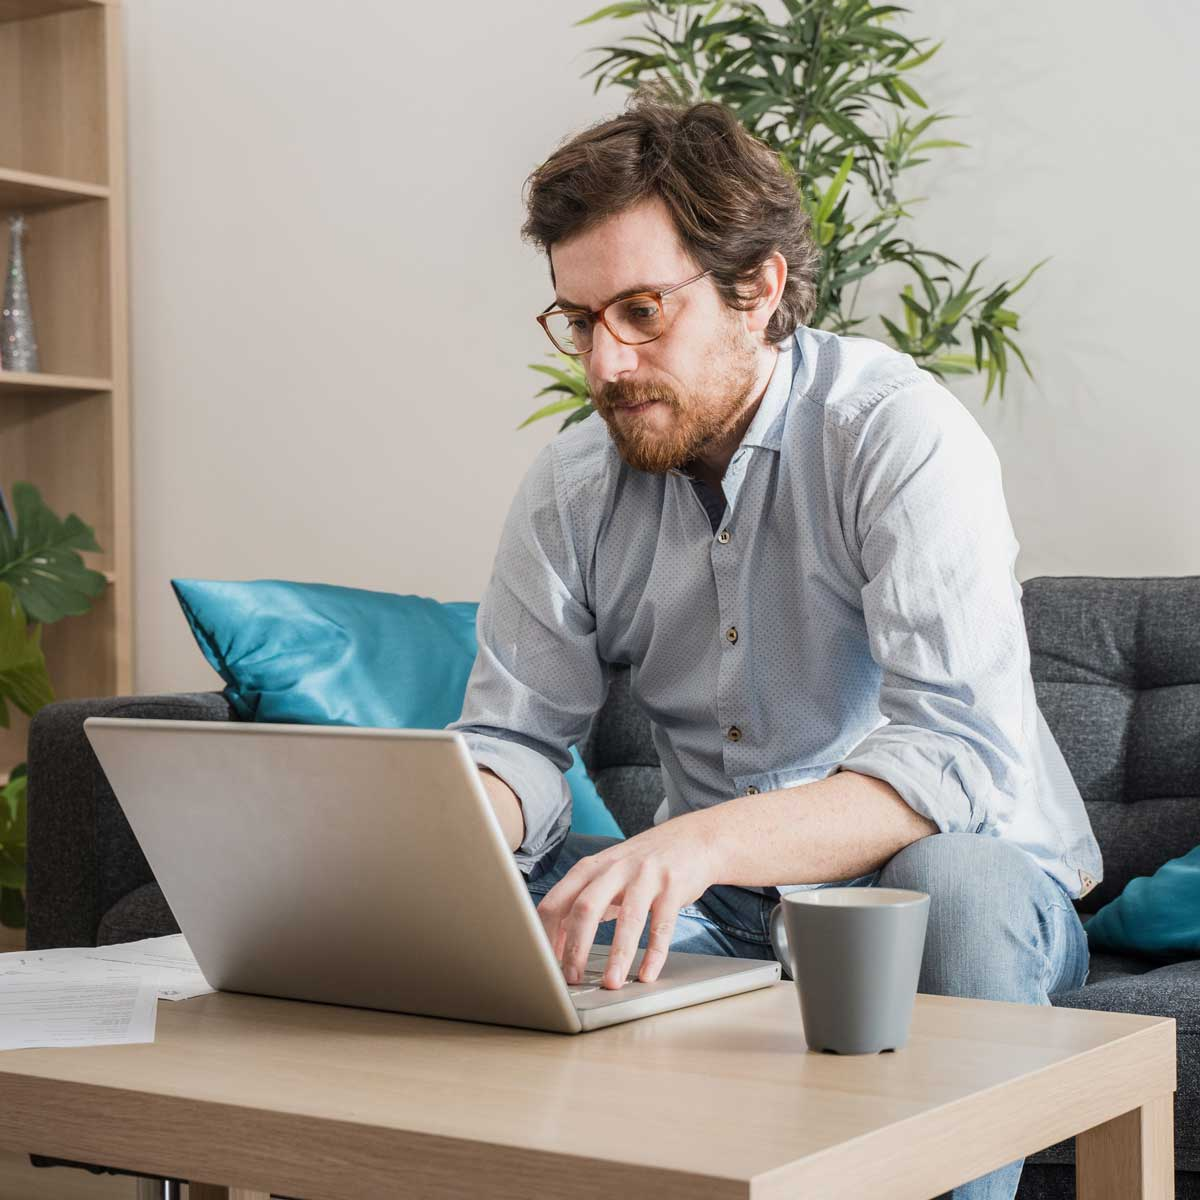 Male businessman working on laptop from home